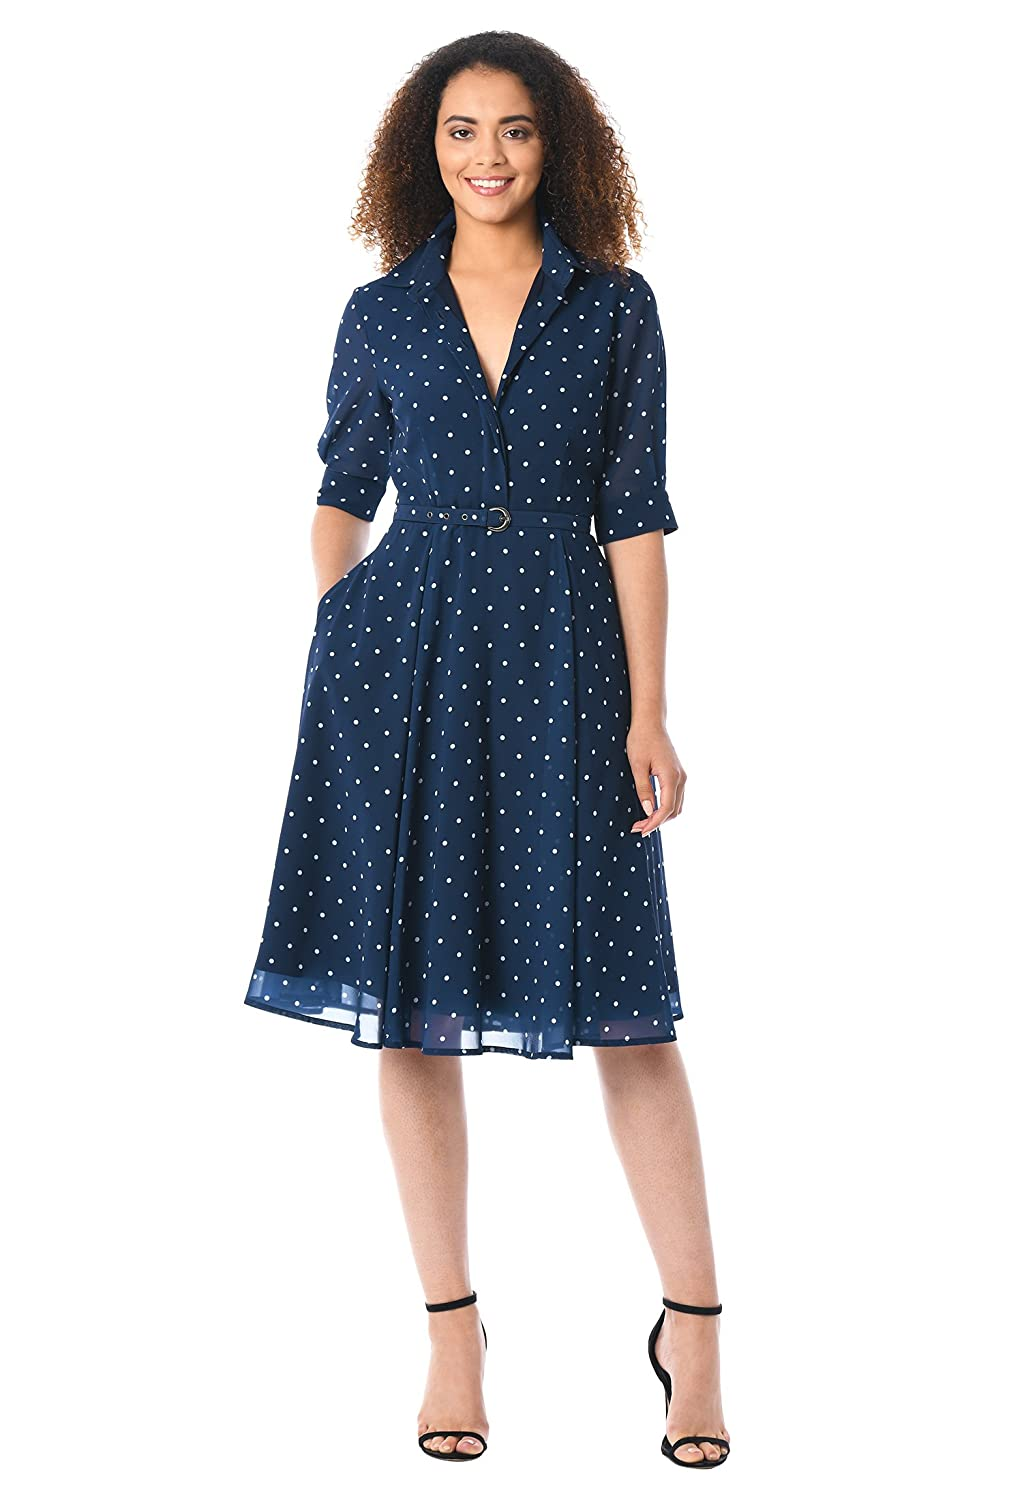 1940s Plus Size Fashion: Style Advice from 1940s to Today Polka dot Print Georgette eShakti Womens Belted Shirtdress $69.95 AT vintagedancer.com